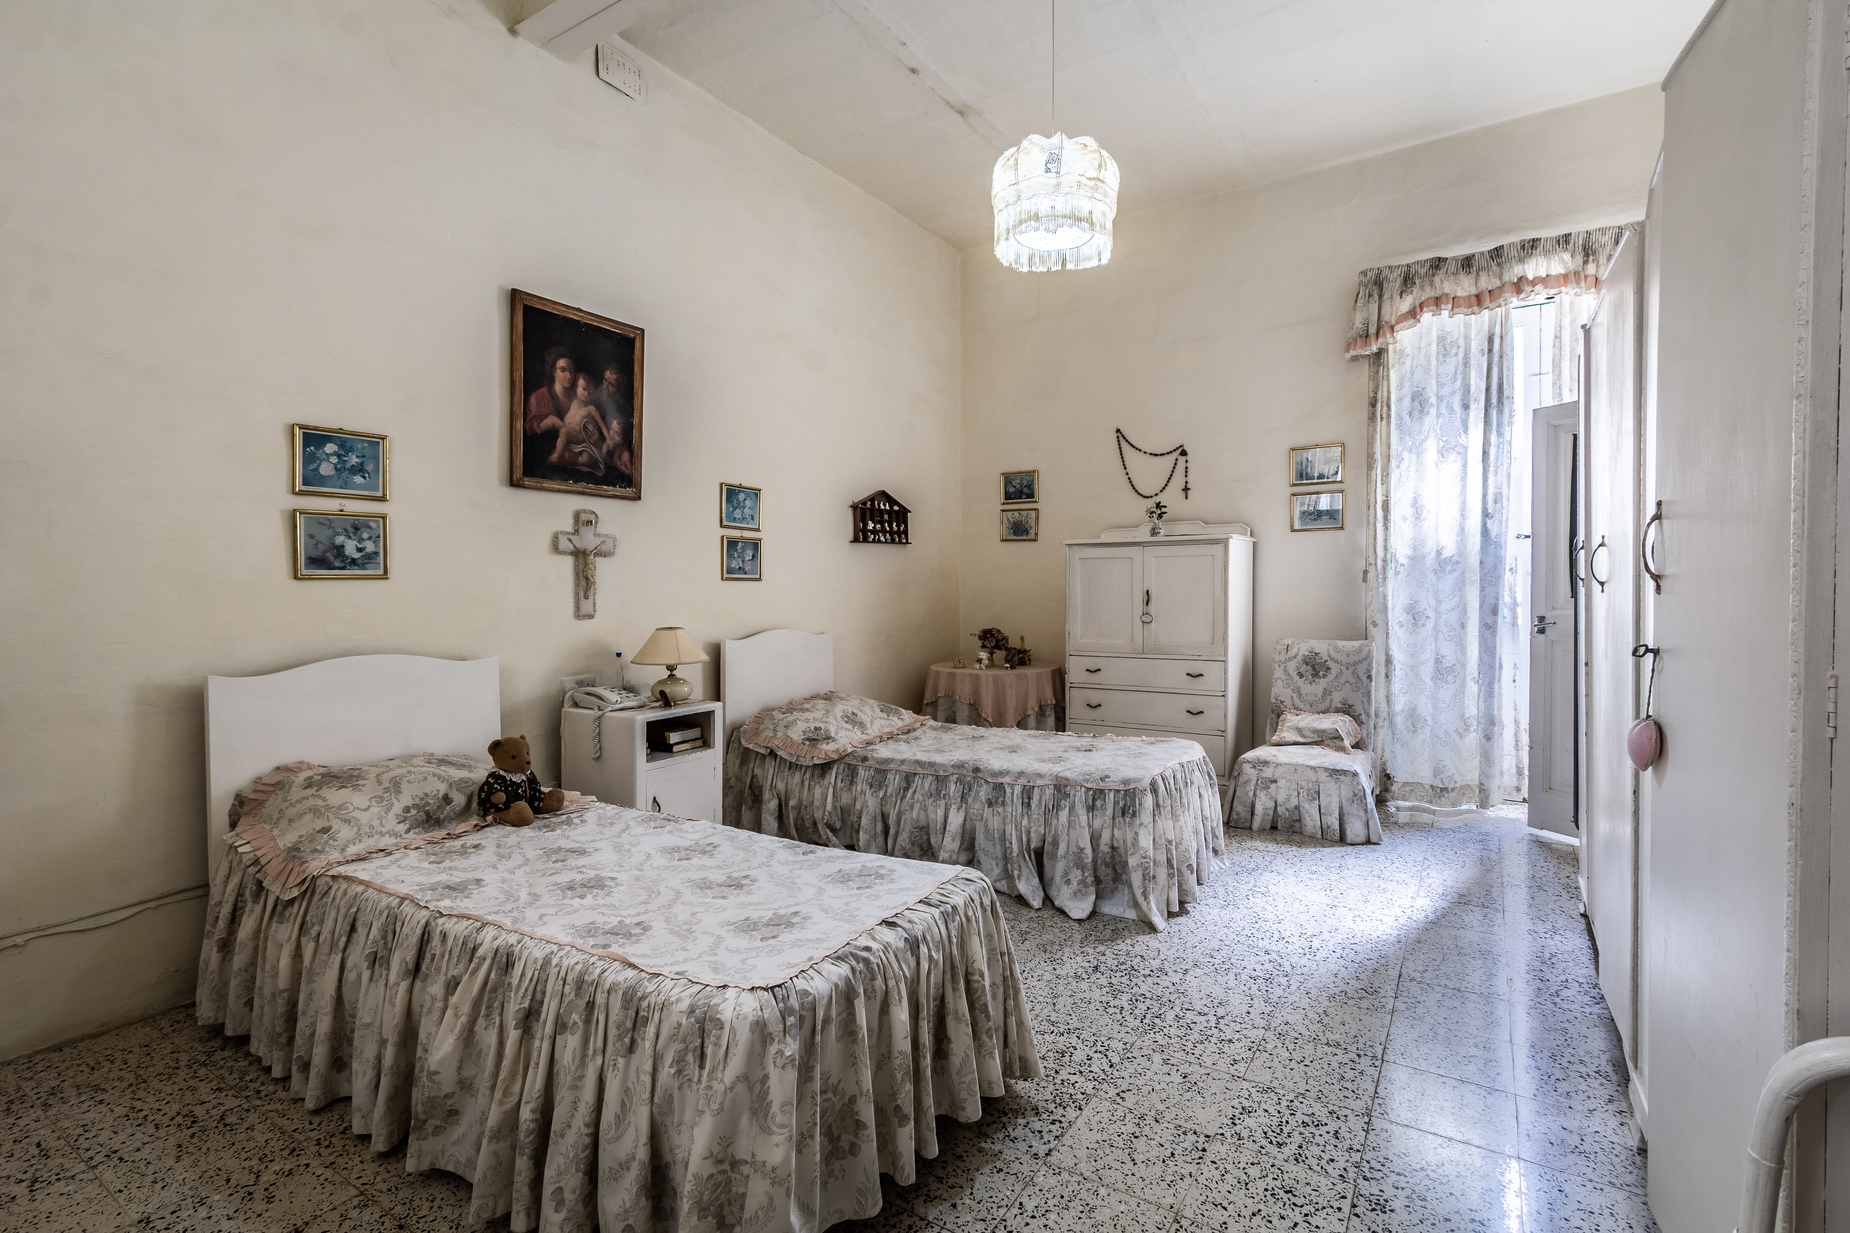 4 bed Town House For Sale in Sliema, Sliema - thumb 14